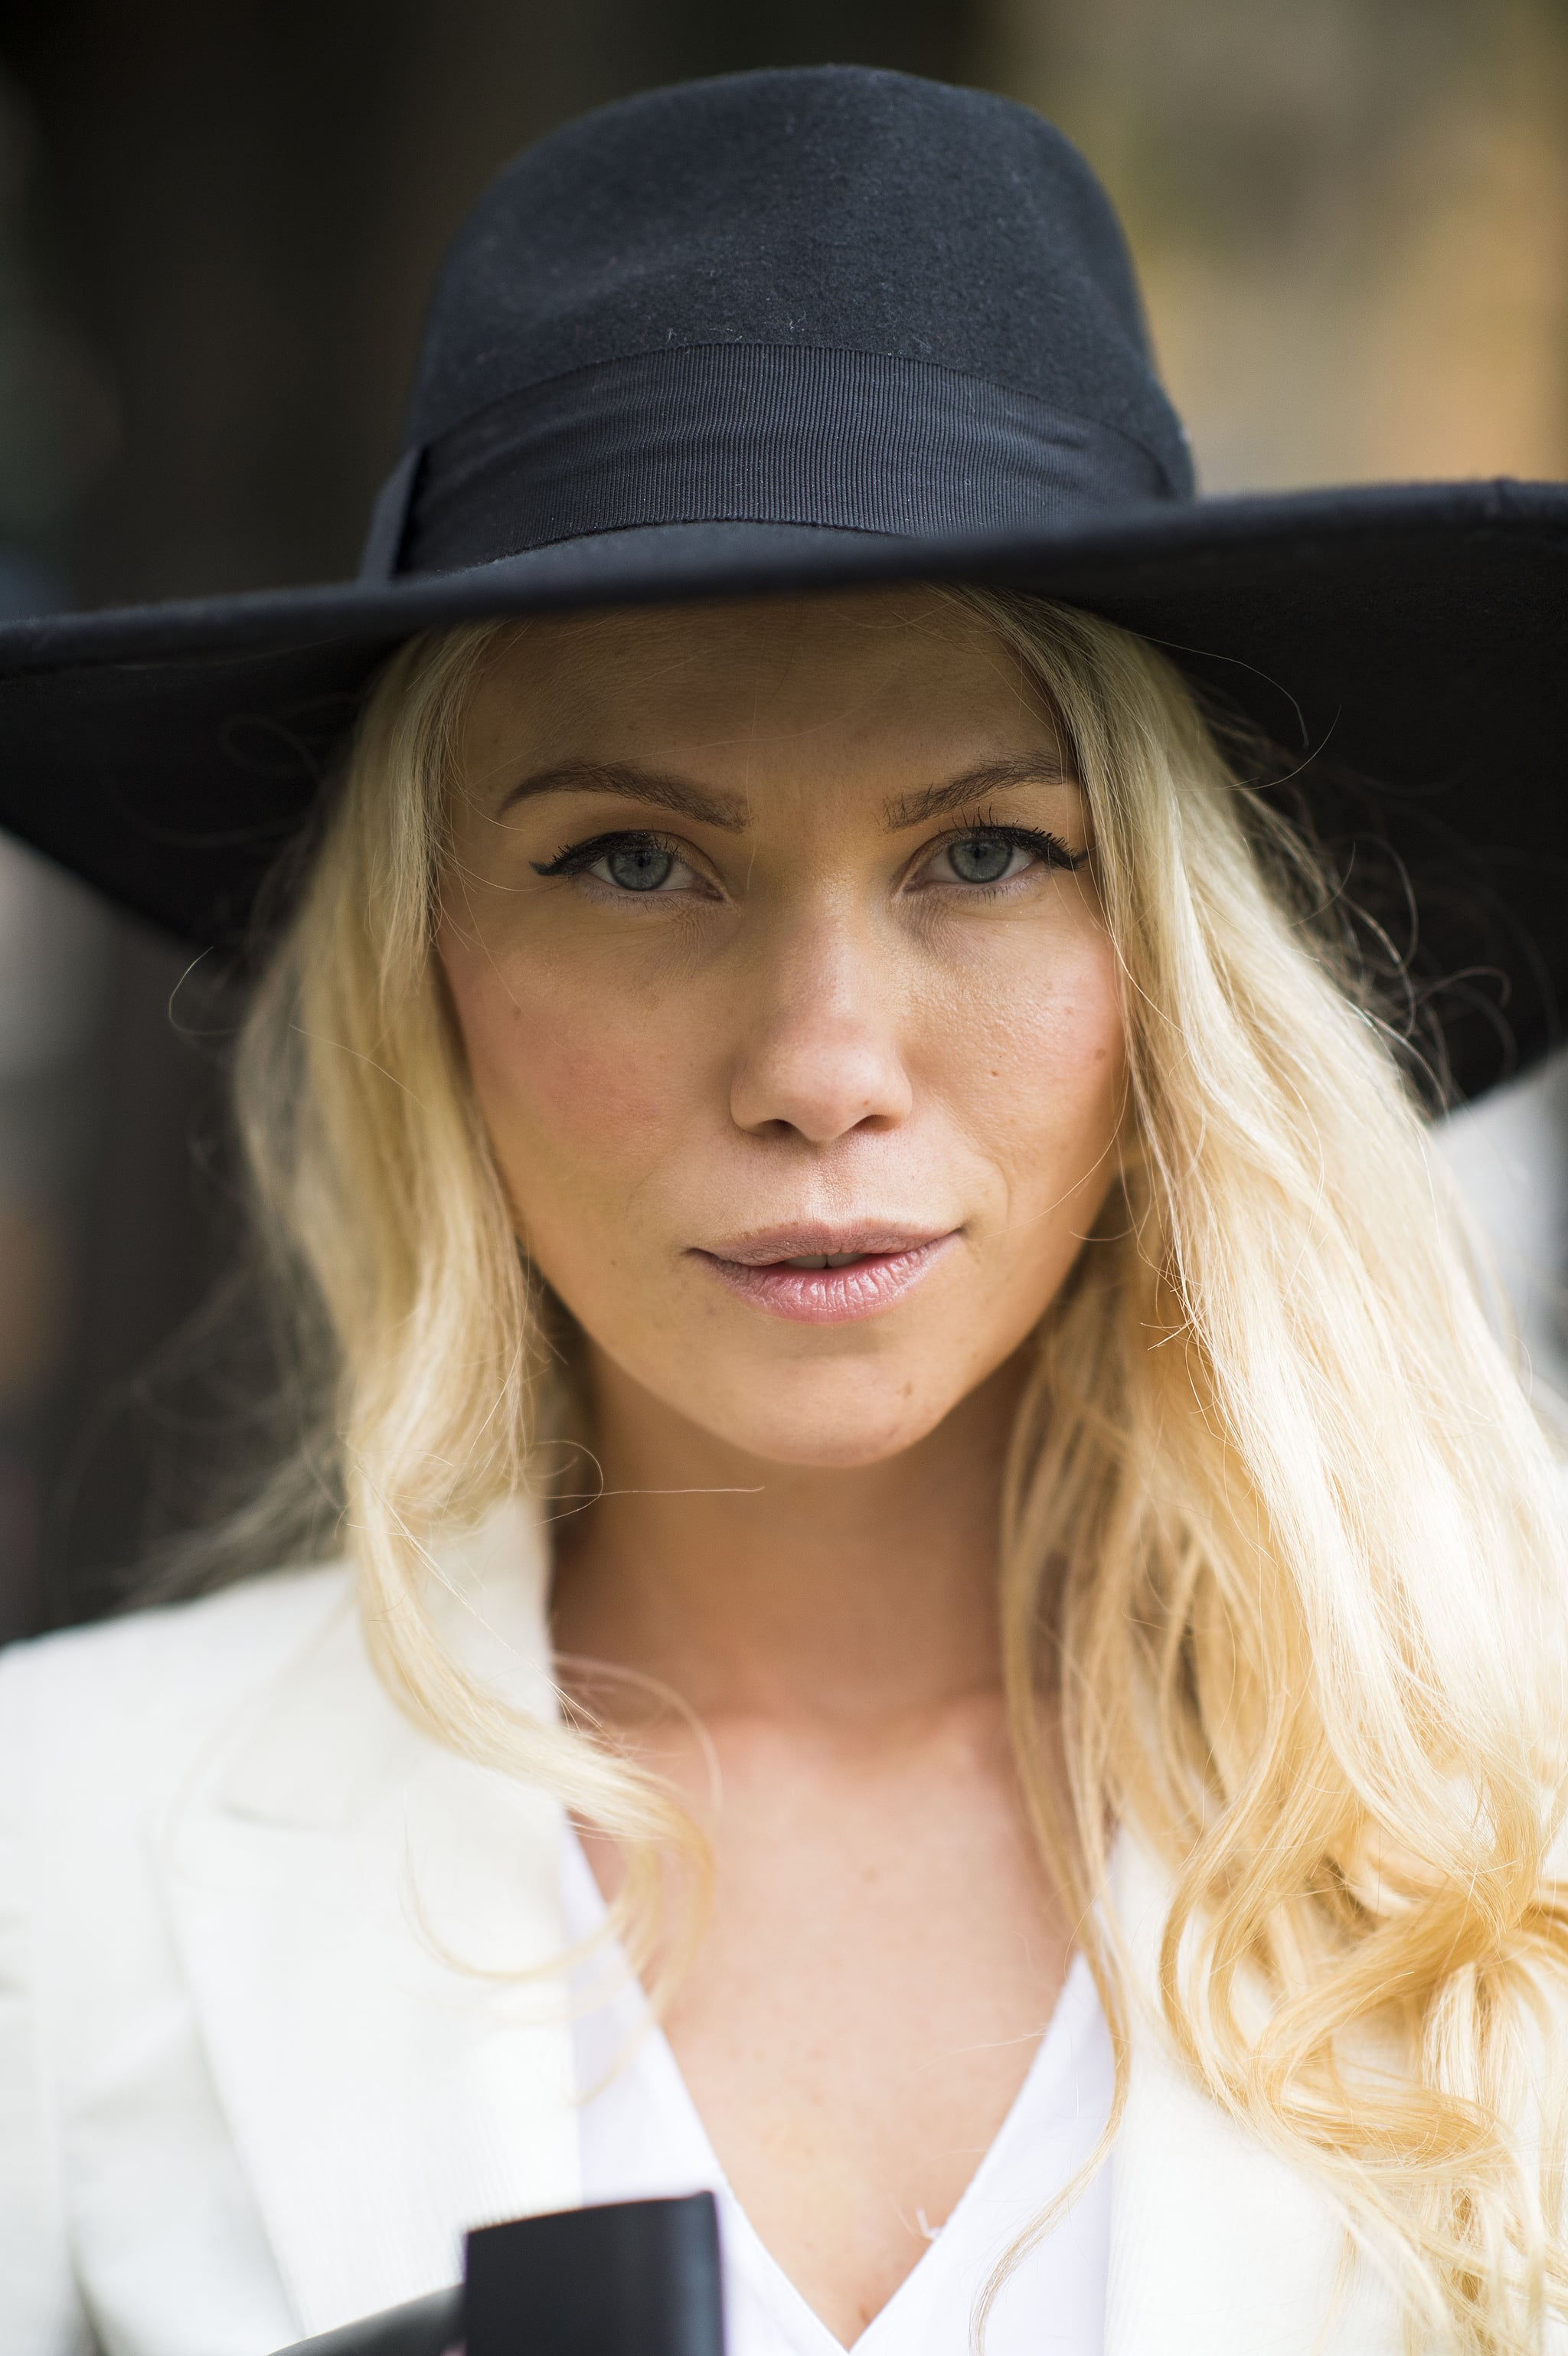 When in doubt, throw on a chapeau and swipe on some cat eyeliner. Source: Le 21ème | Adam Katz Sinding